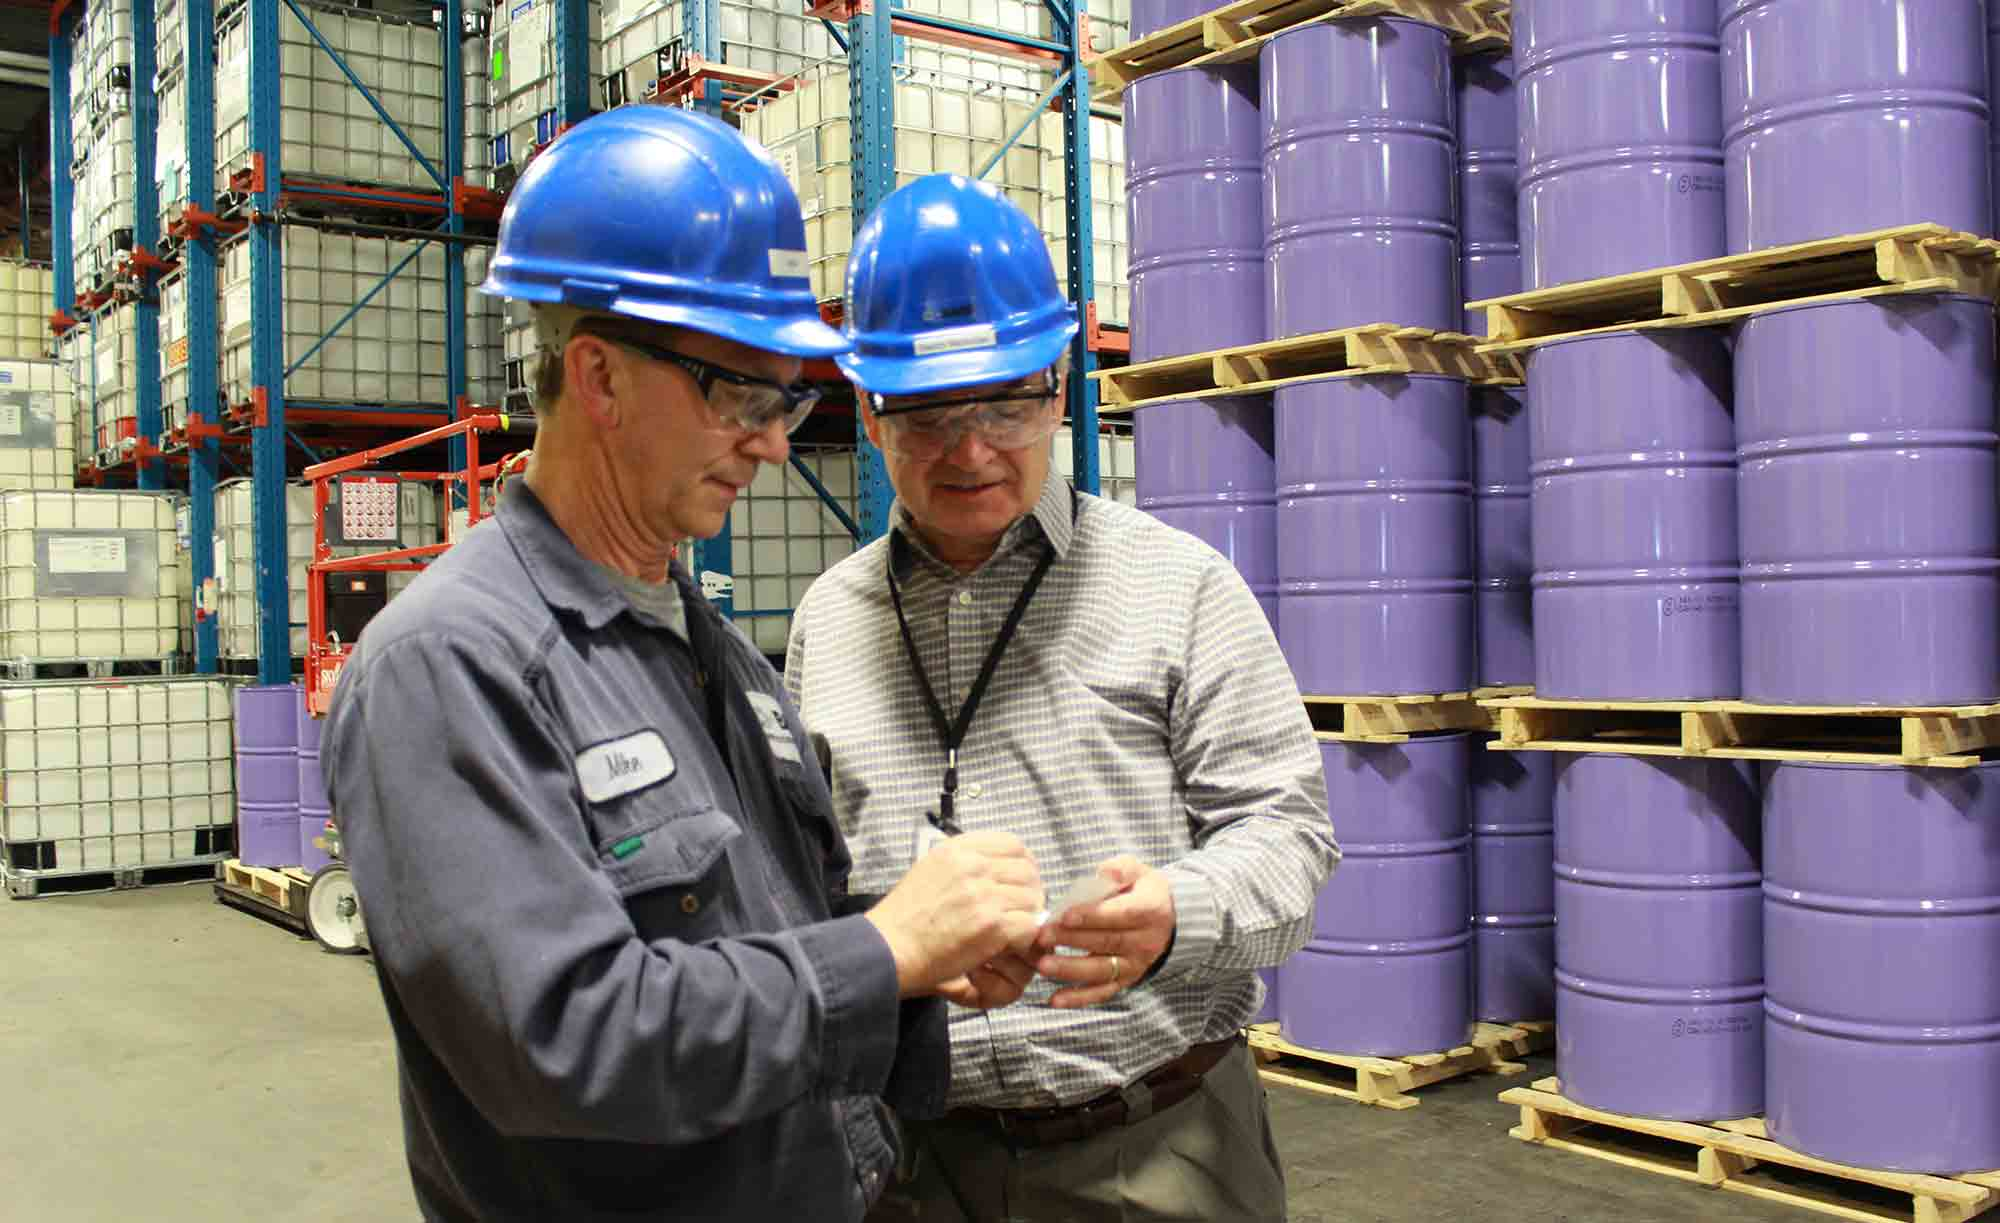 BASF employees Mike Smith, Production Supervisor, and Barry Nicholas, Toronto Site Manager, review inventory levels in the warehouse of BASF's Toronto site.